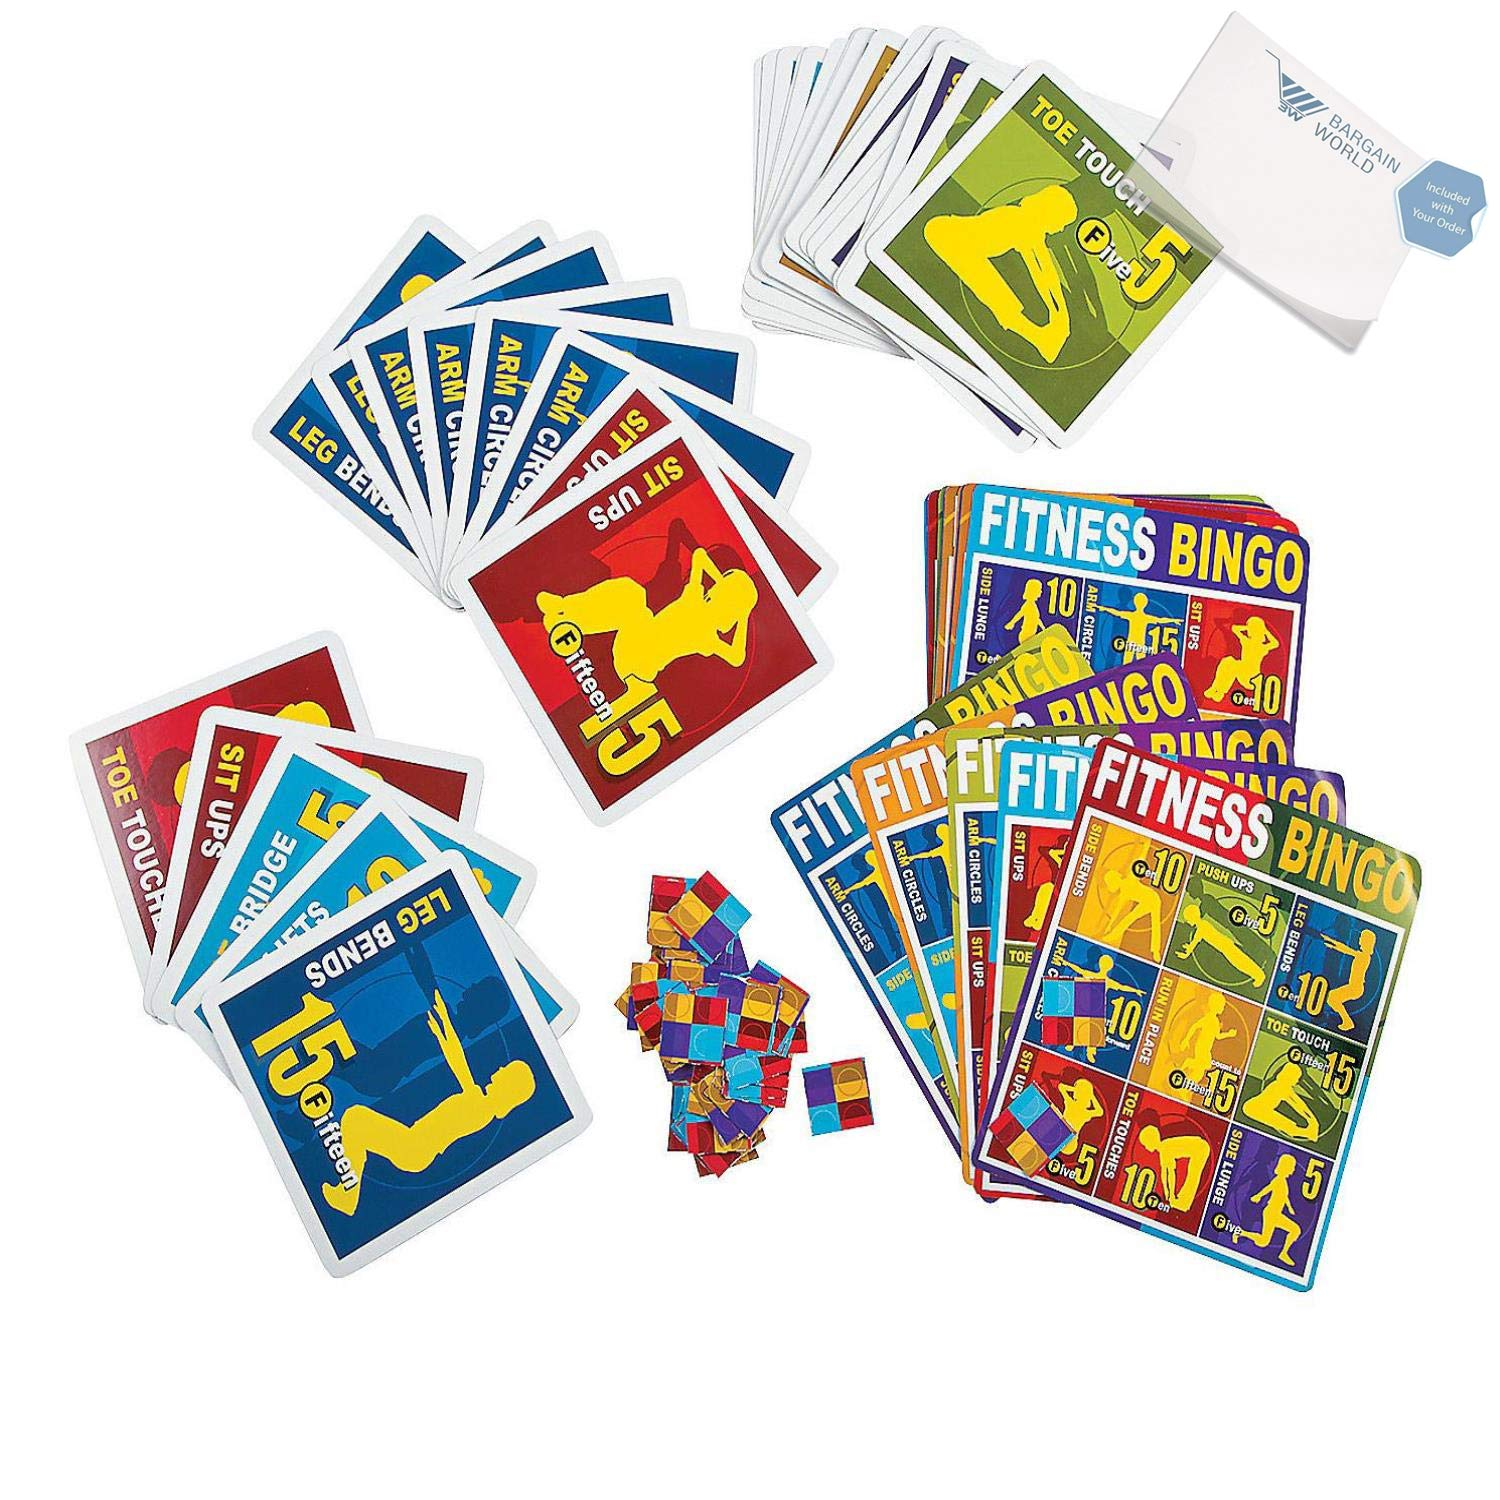 Bargain World Cardboard Fitness Bingo (With Sticky Notes) by Bargain World (Image #1)